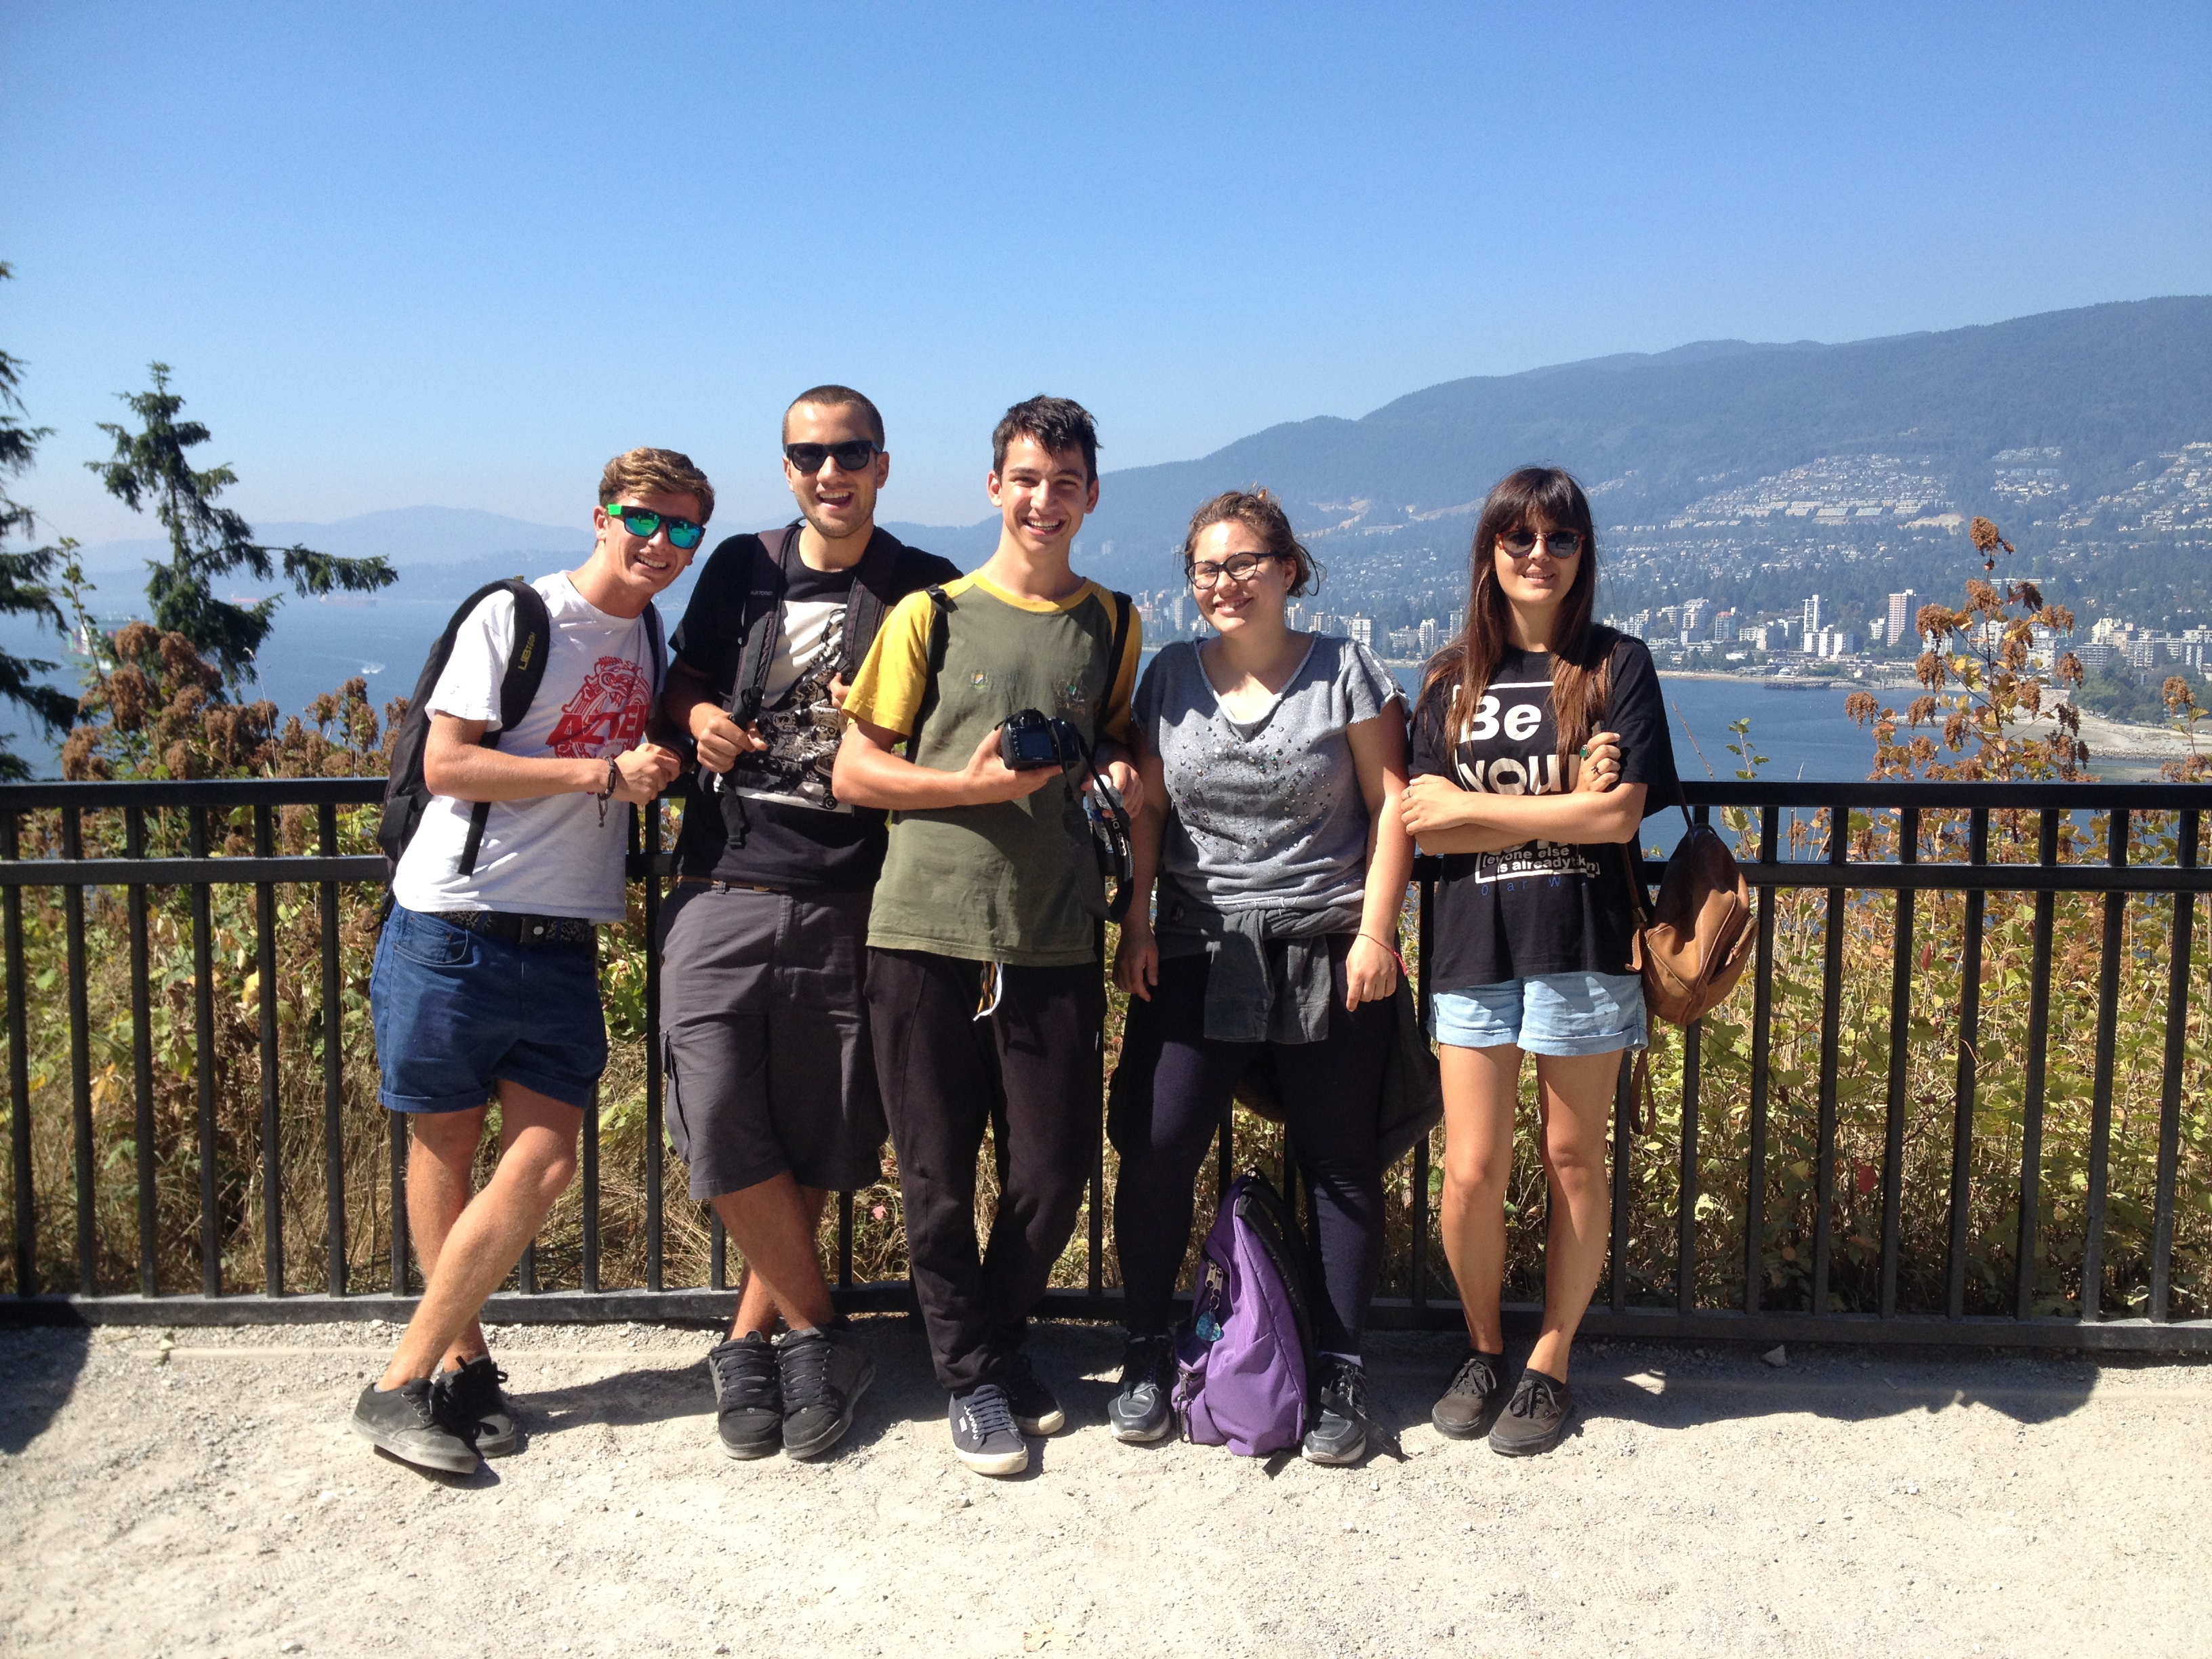 Langley School District: August New Student Orientation Vancouver Day Trip